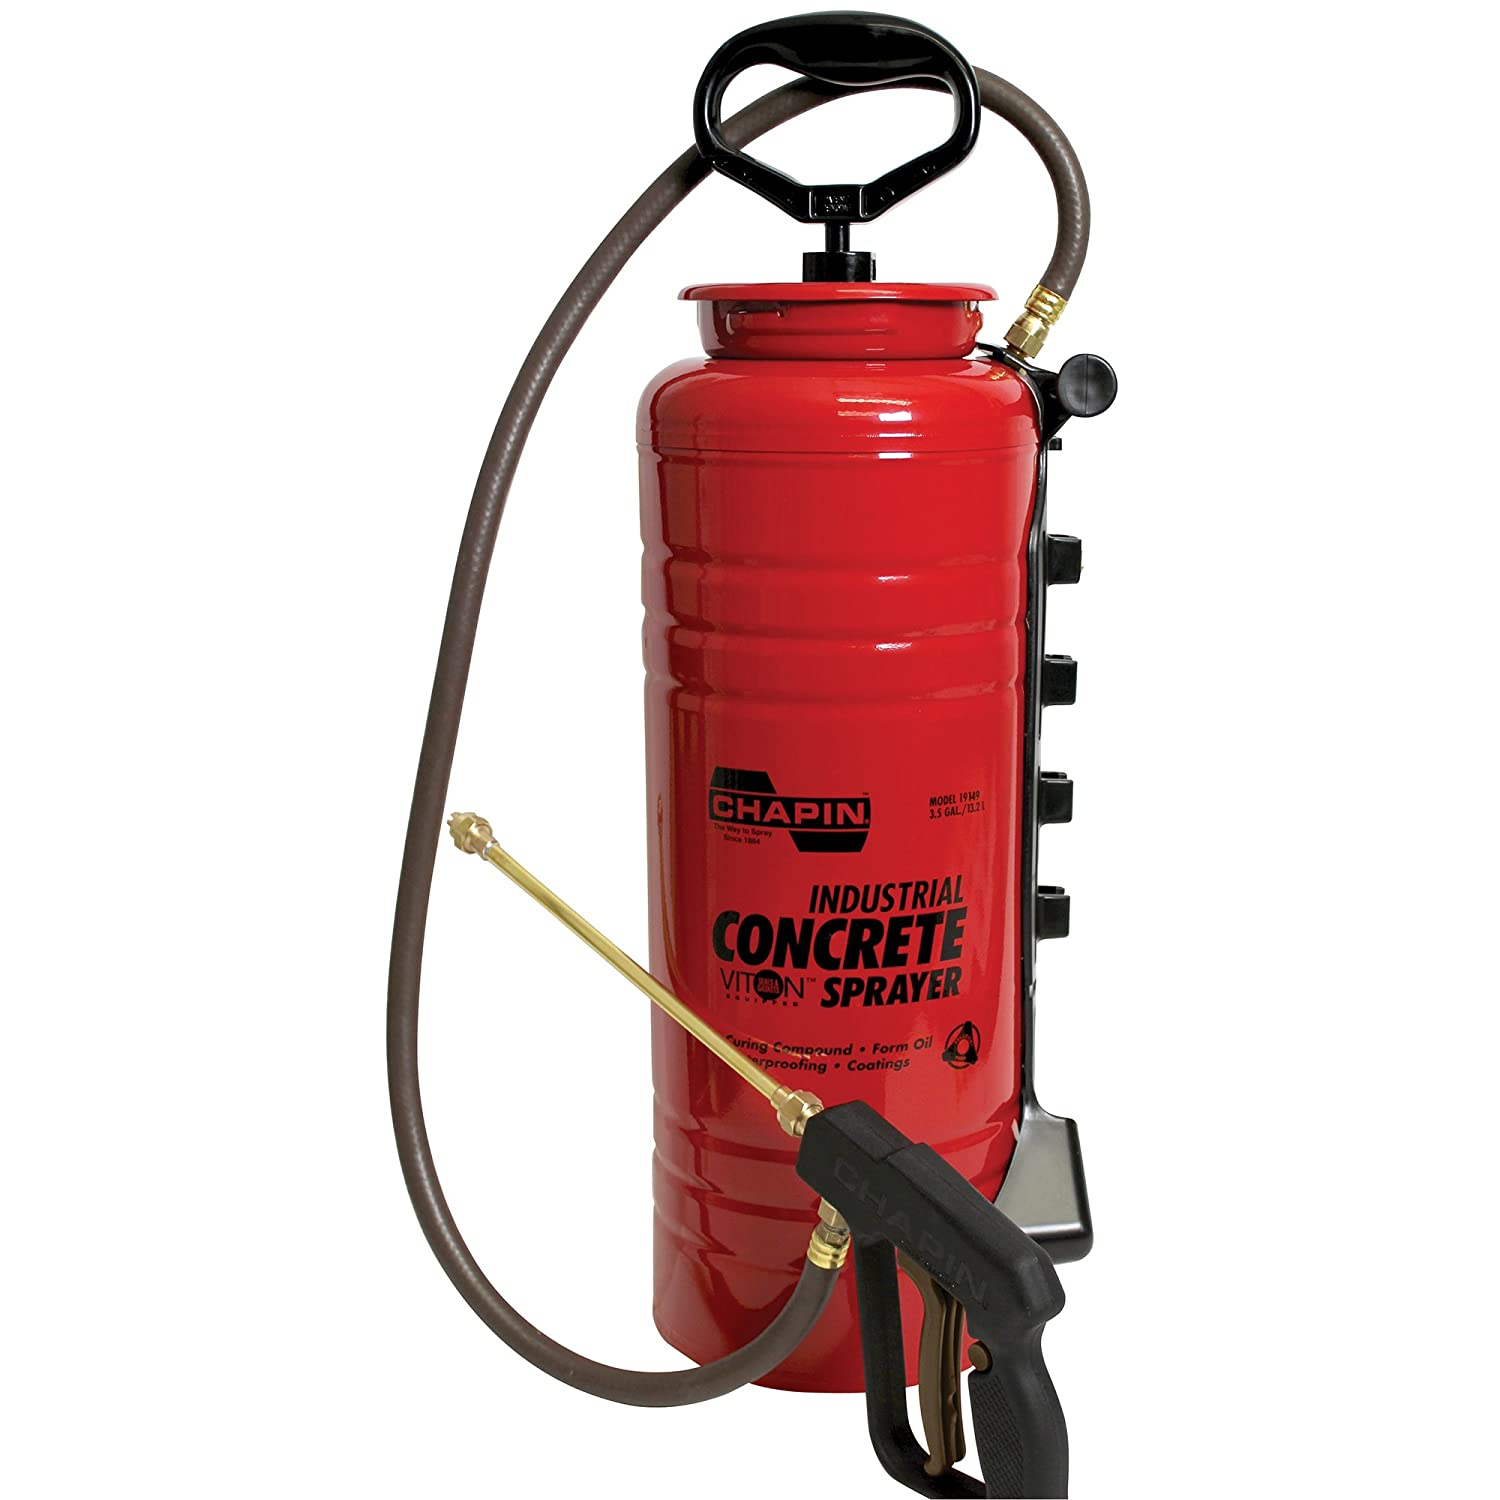 Chapin 19149 3.5-Gallon Dripless Industrial Concrete Open Head Sprayer for Professional Concrete Applications (1 Sprayer/Package)